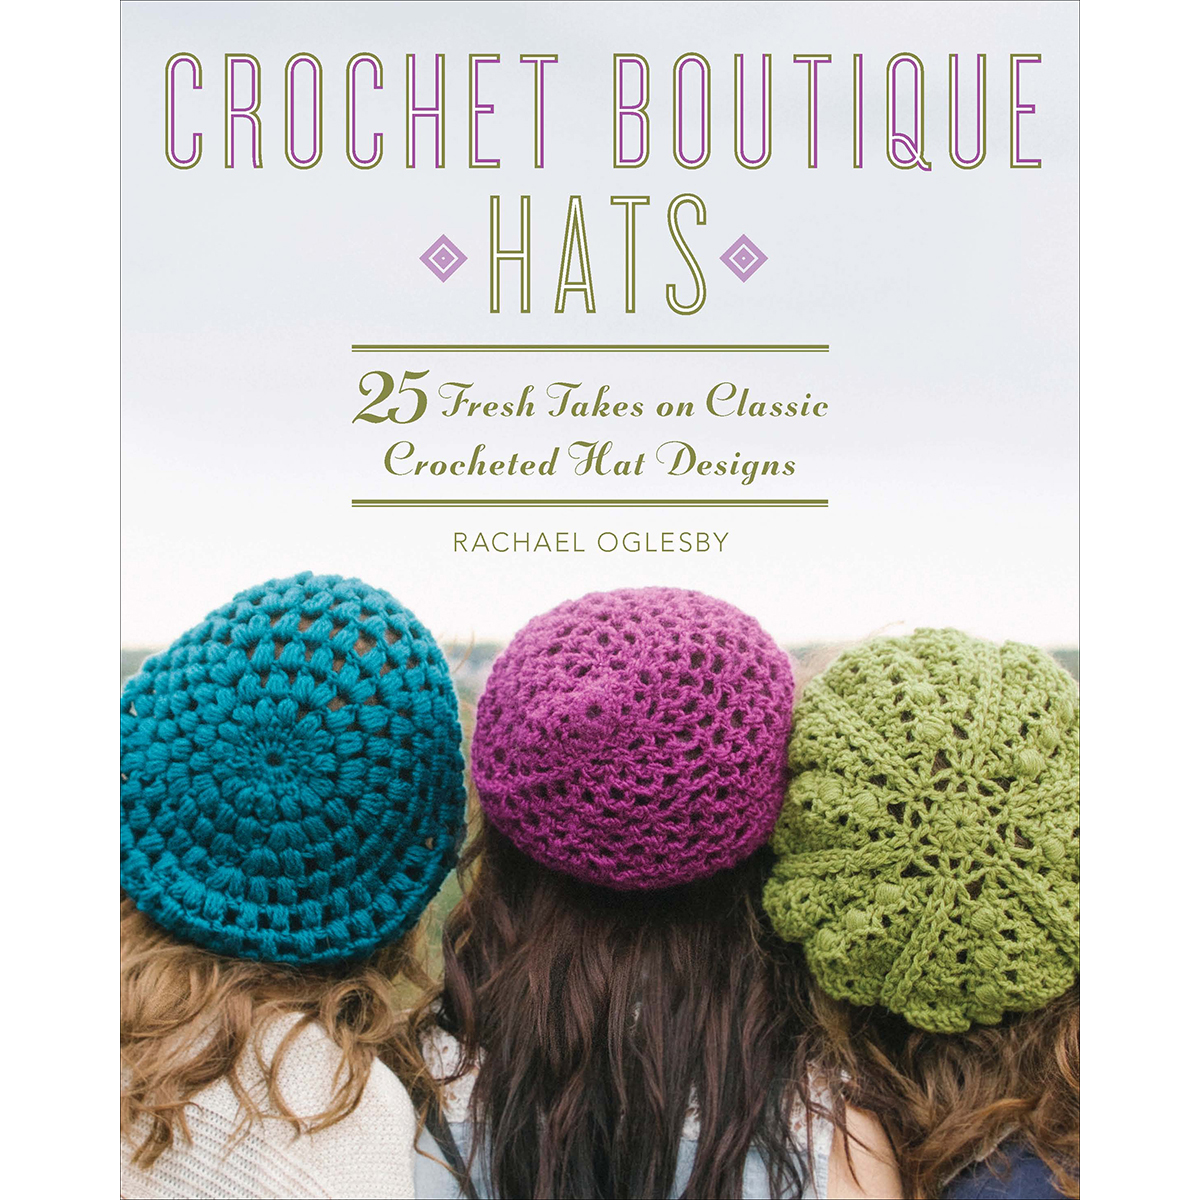 Books & Crochet Books ? Crochet Books & Crochet Patterns ? Crochet ...